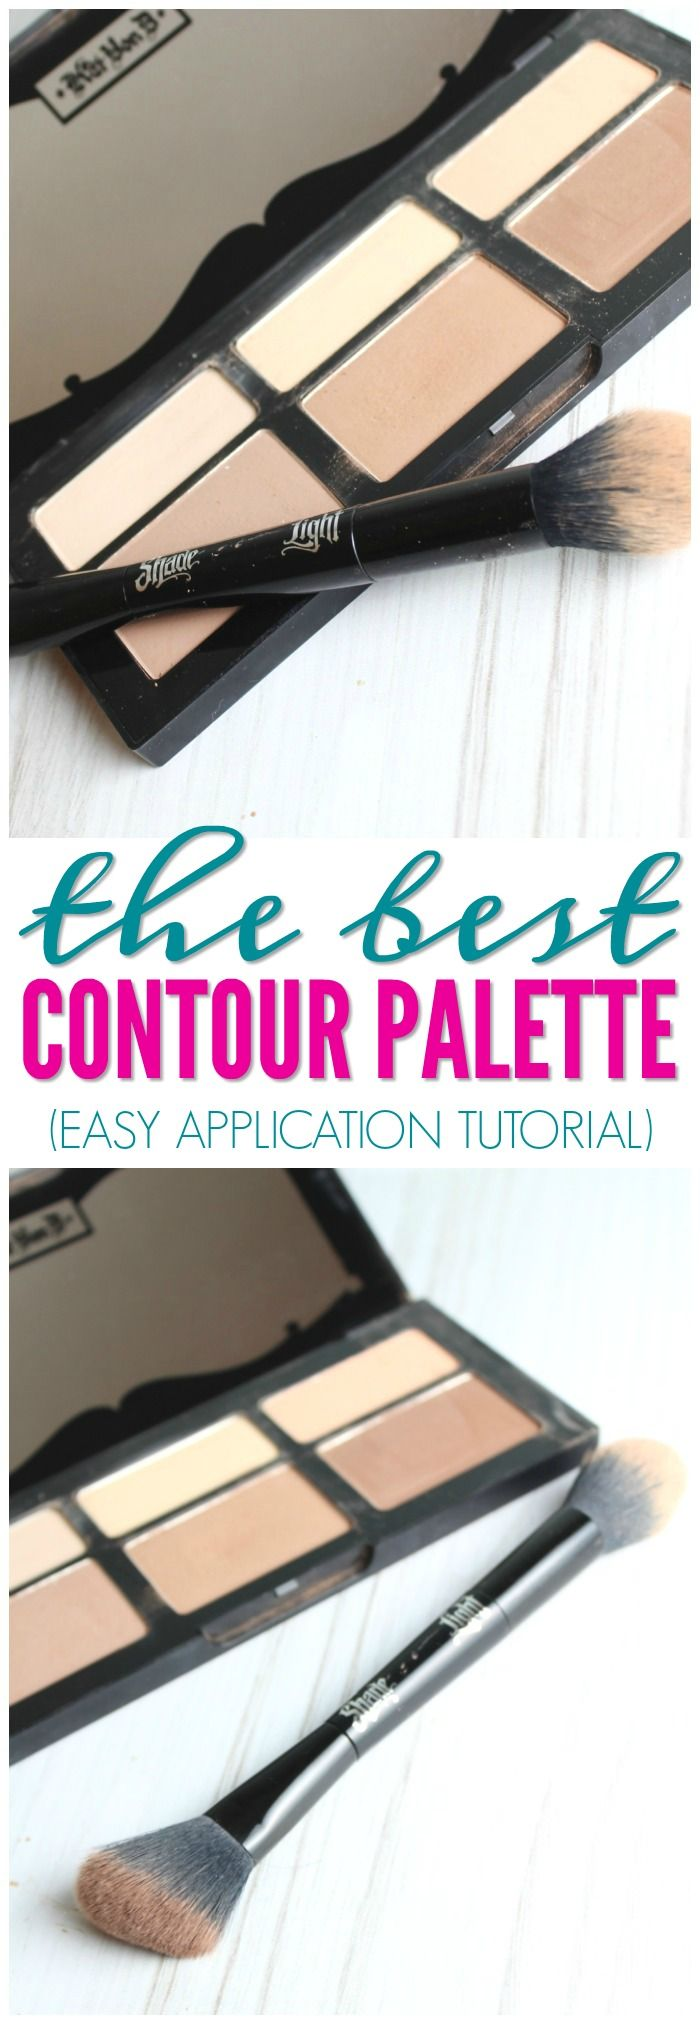 The Best Contour Palette for Summer! Here is my honest review of the Kat Von D Shade + Light Contour Palette and Brush! A favorite for summer or wedding makeup!